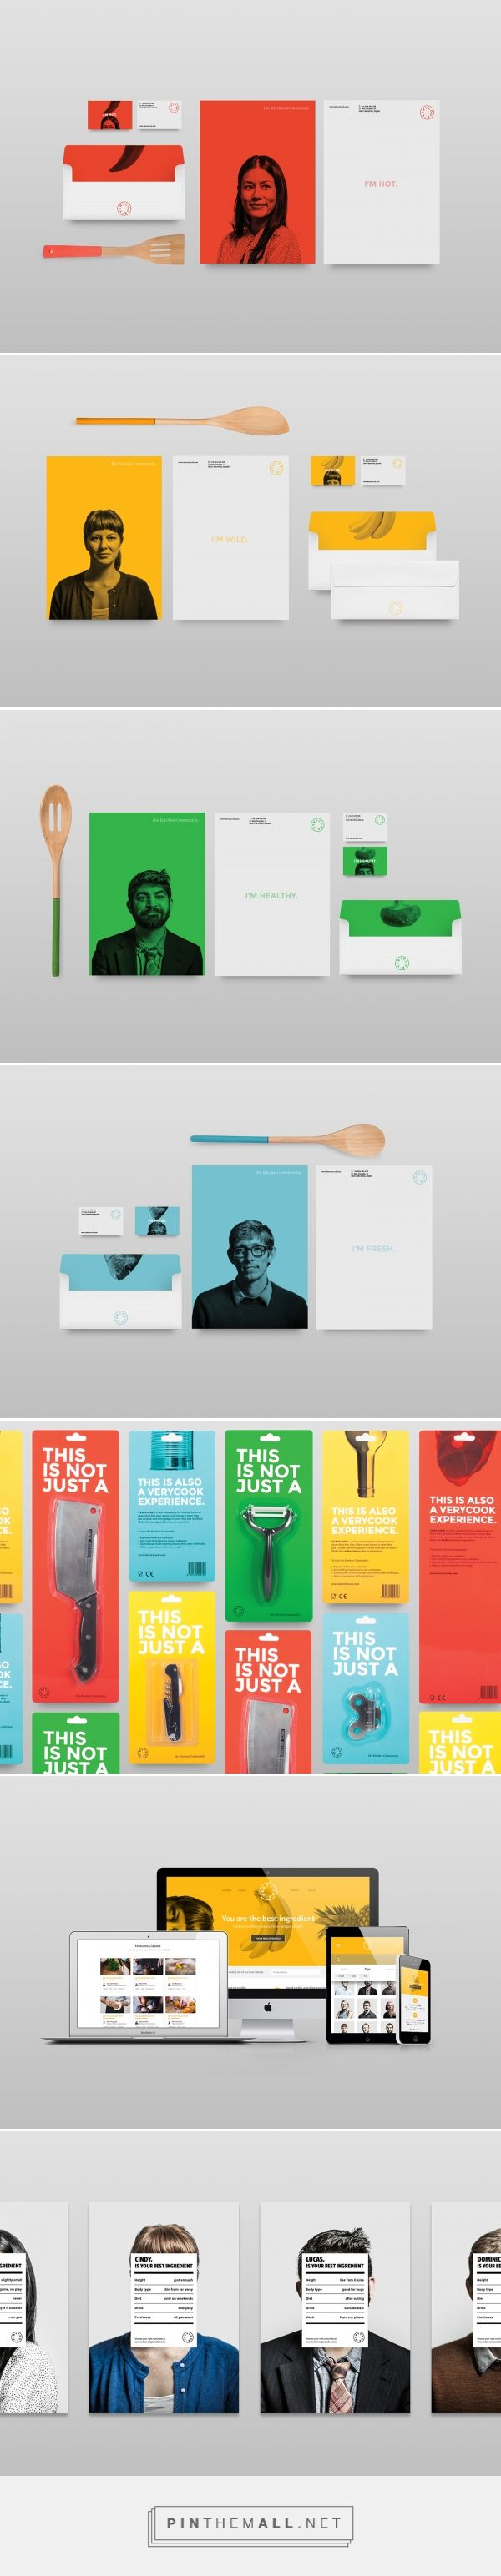 Verycook on Behance